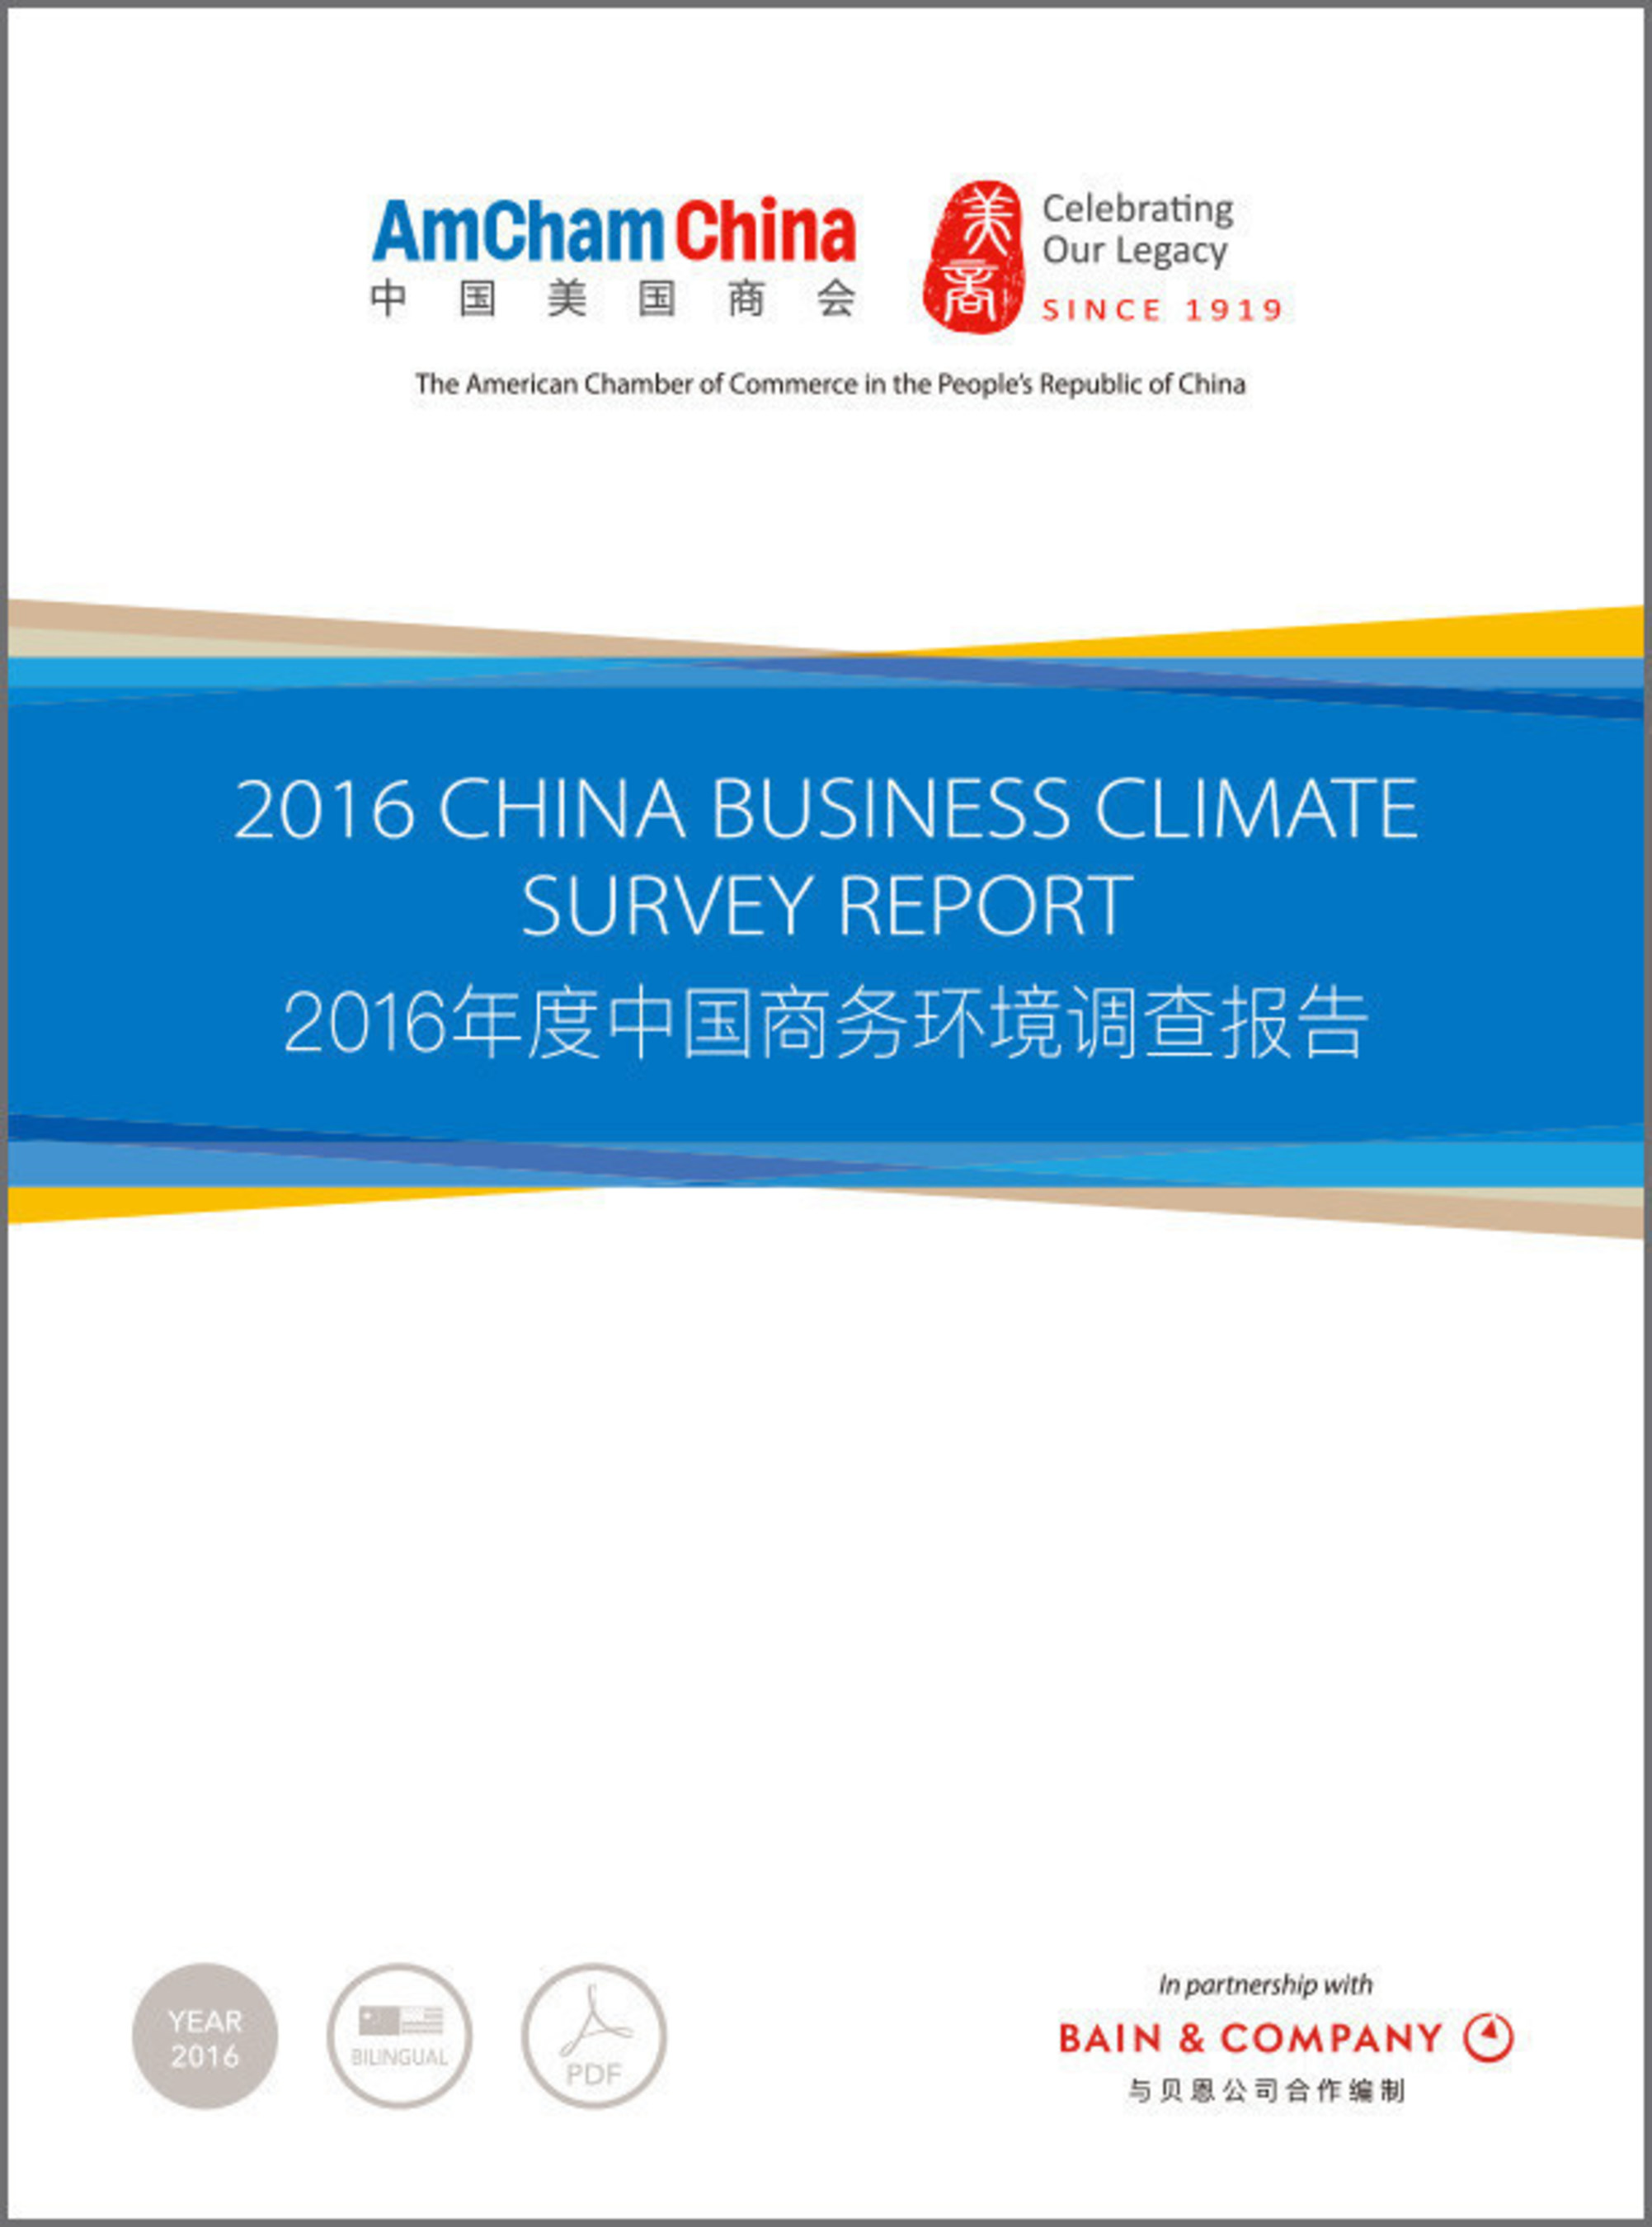 AmCham China Business Climate Survey 2016